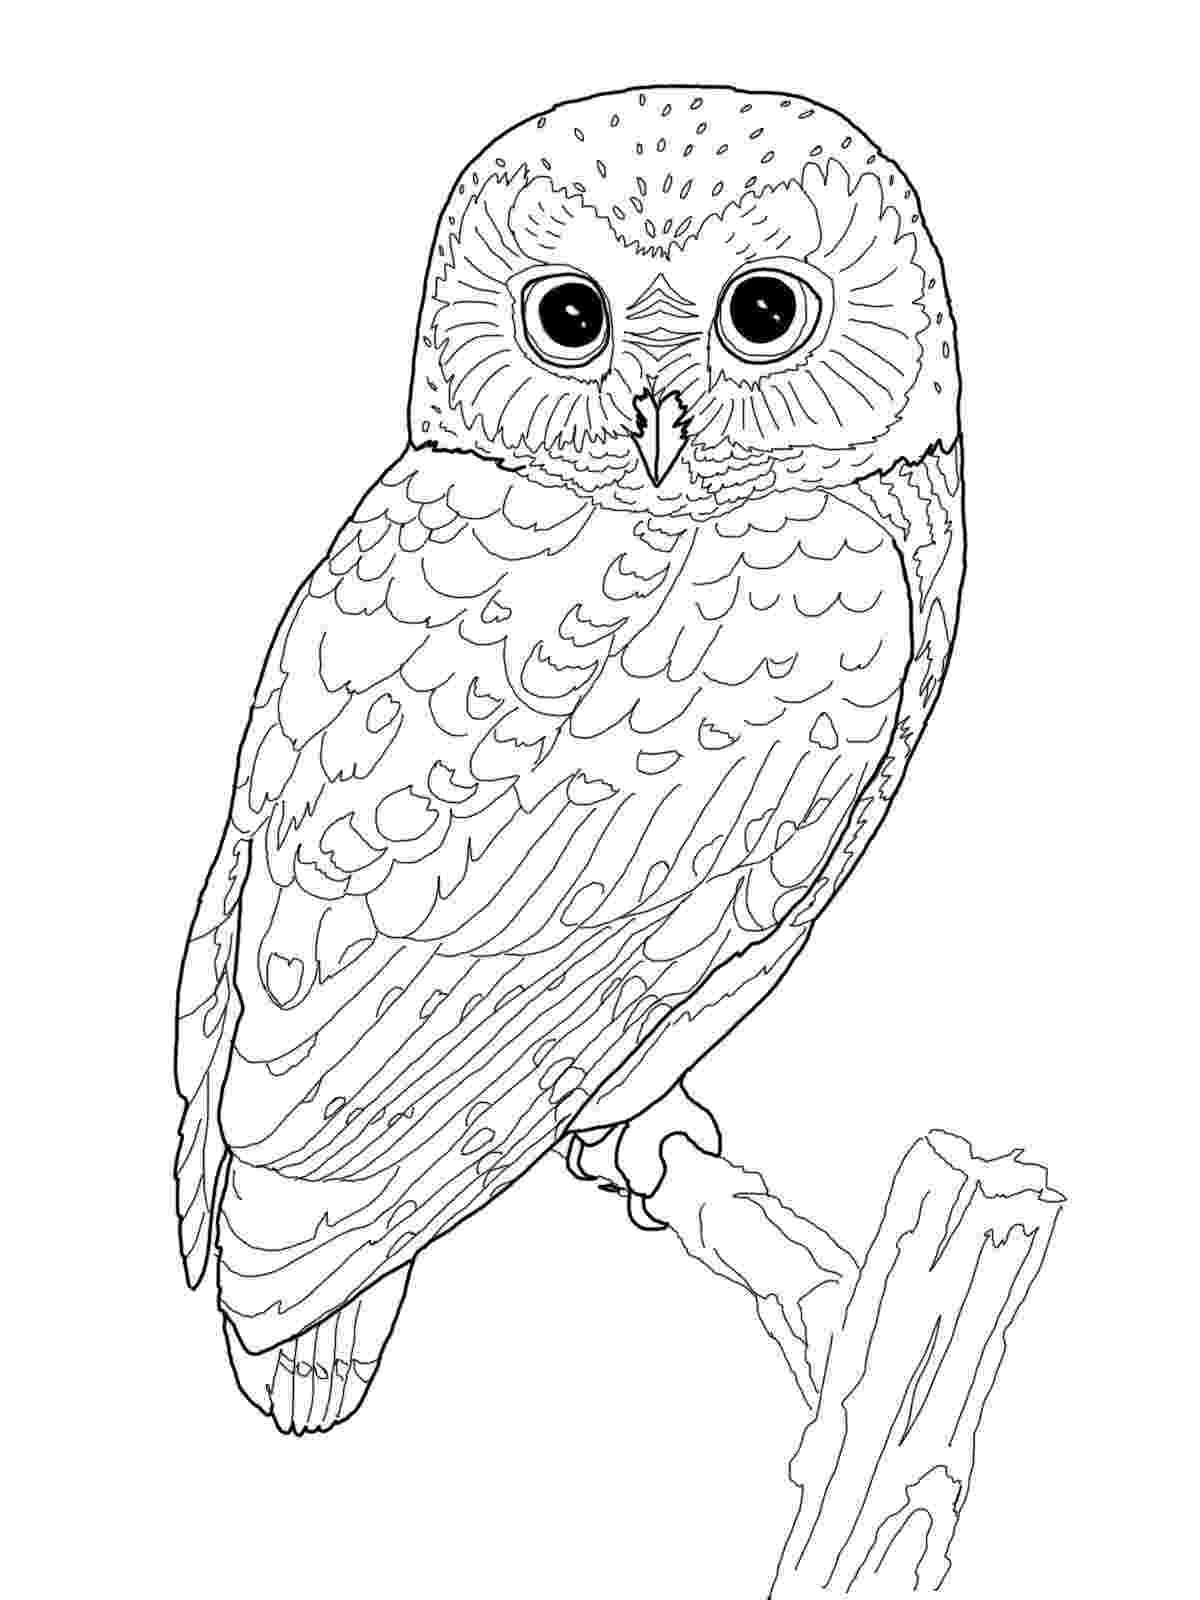 owls to color cartoon owl coloring page free printable coloring pages color owls to